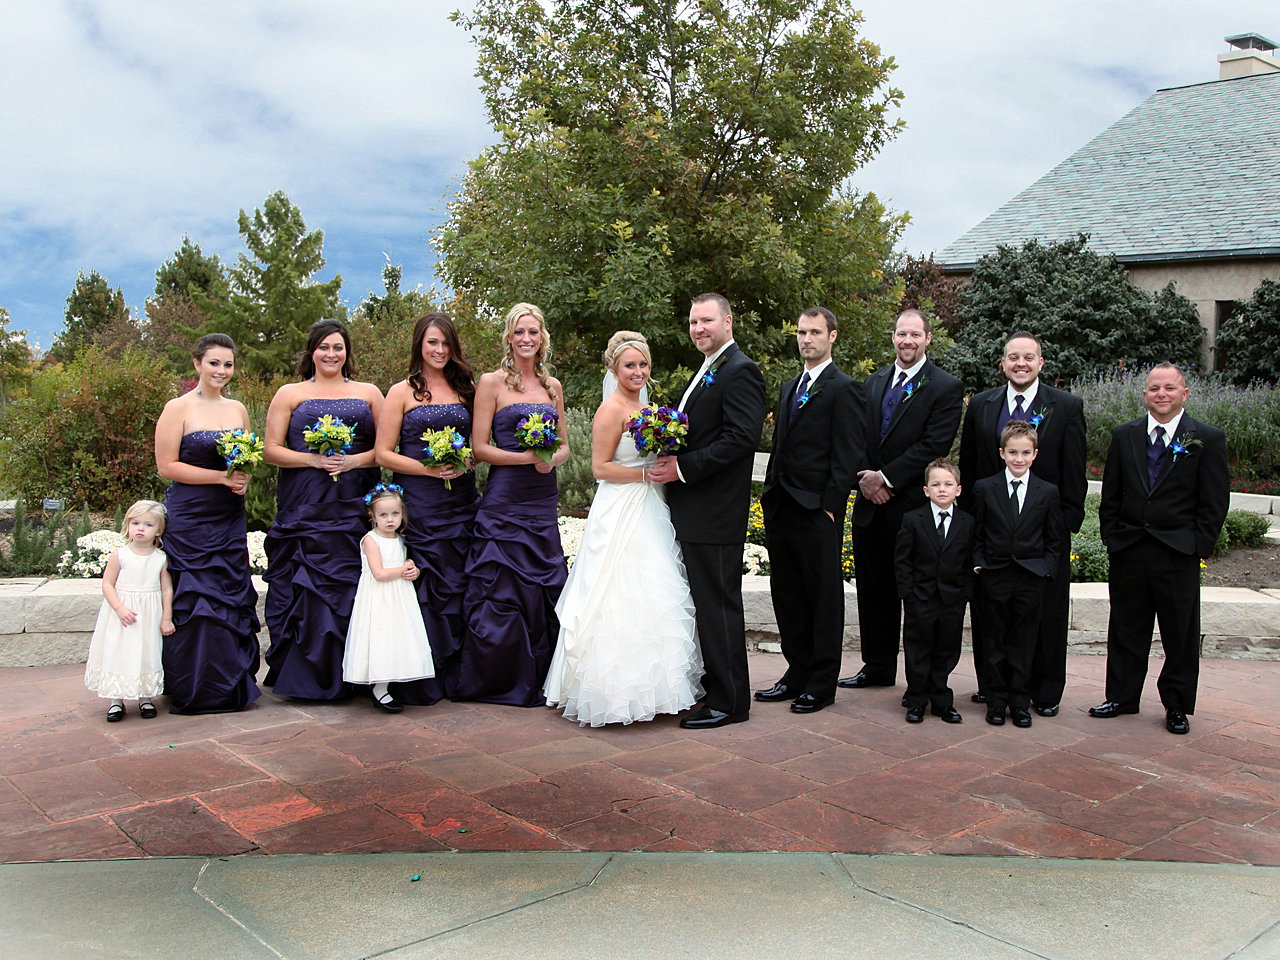 wedding photograpers omaha nebraska wedding photography